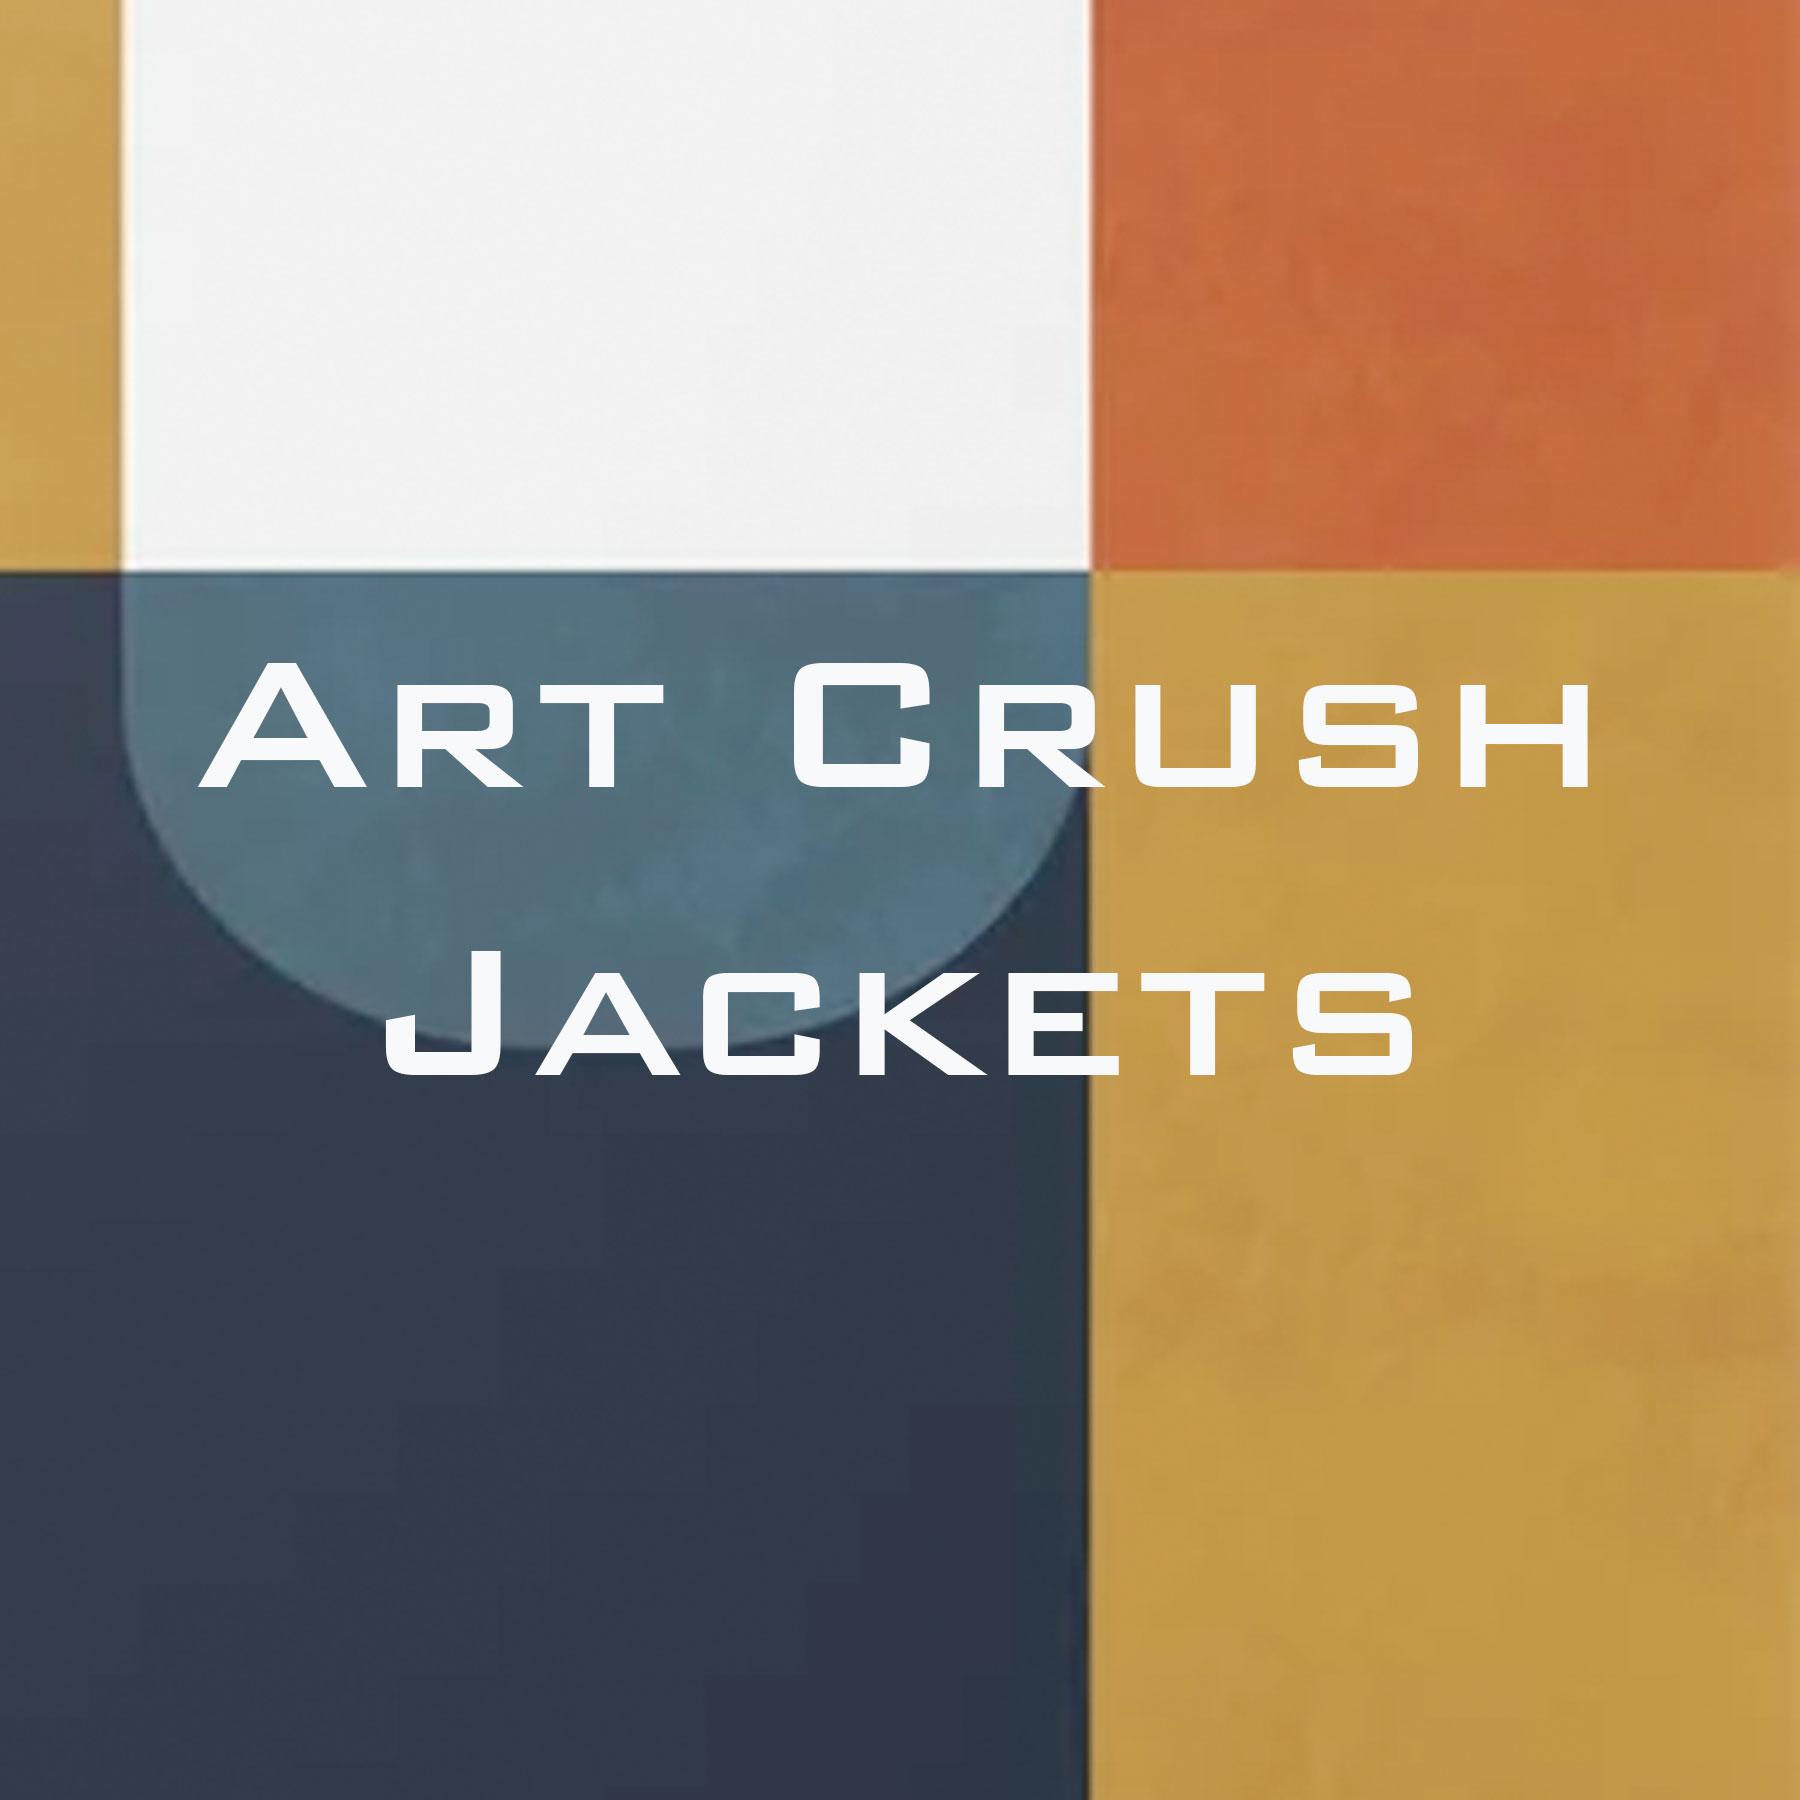 Wholesale Art Crush Jackets